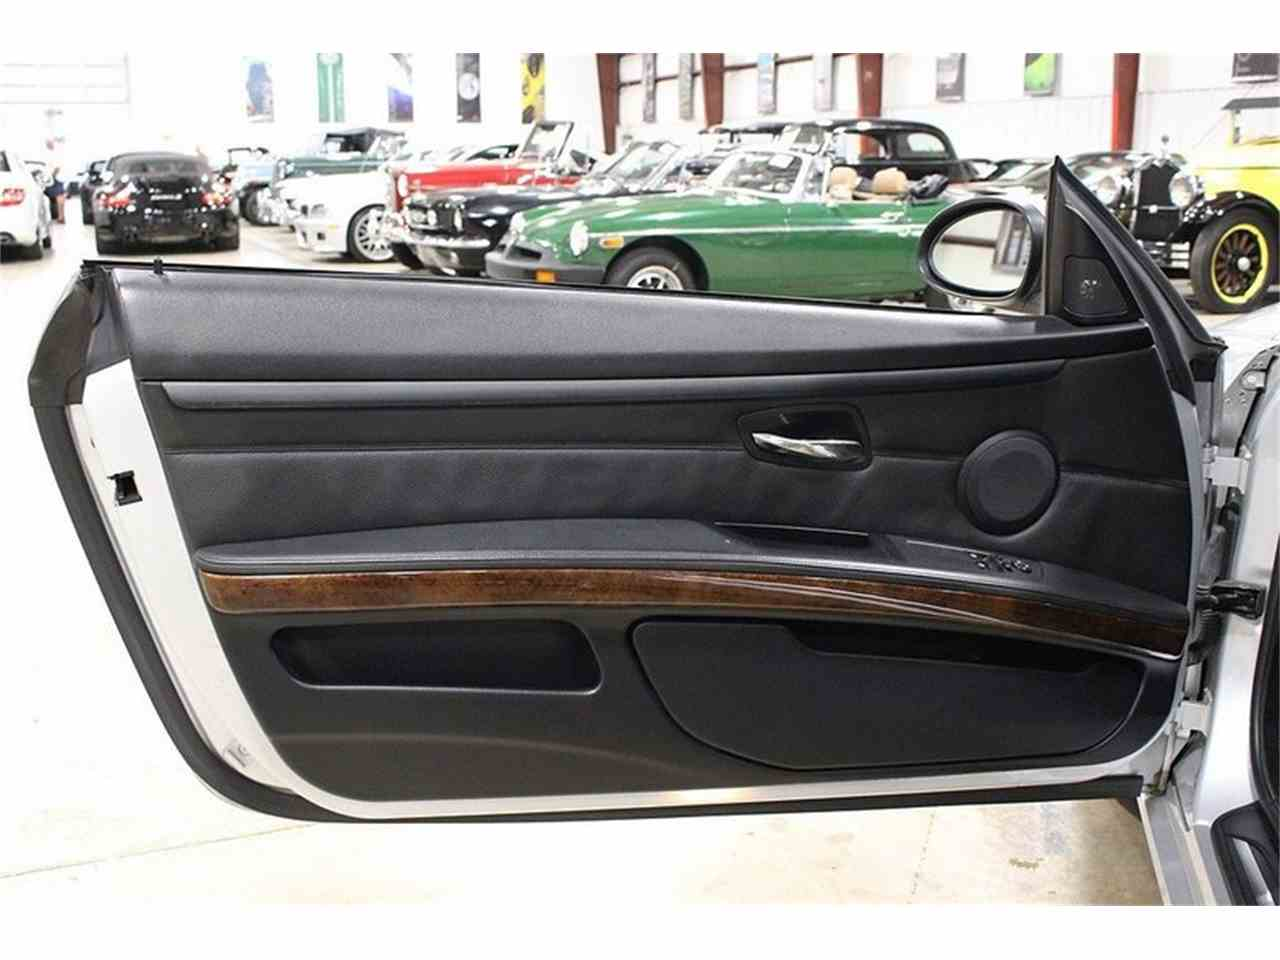 Large Picture of 2007 BMW 335i located in Michigan - $9,900.00 - LS5N